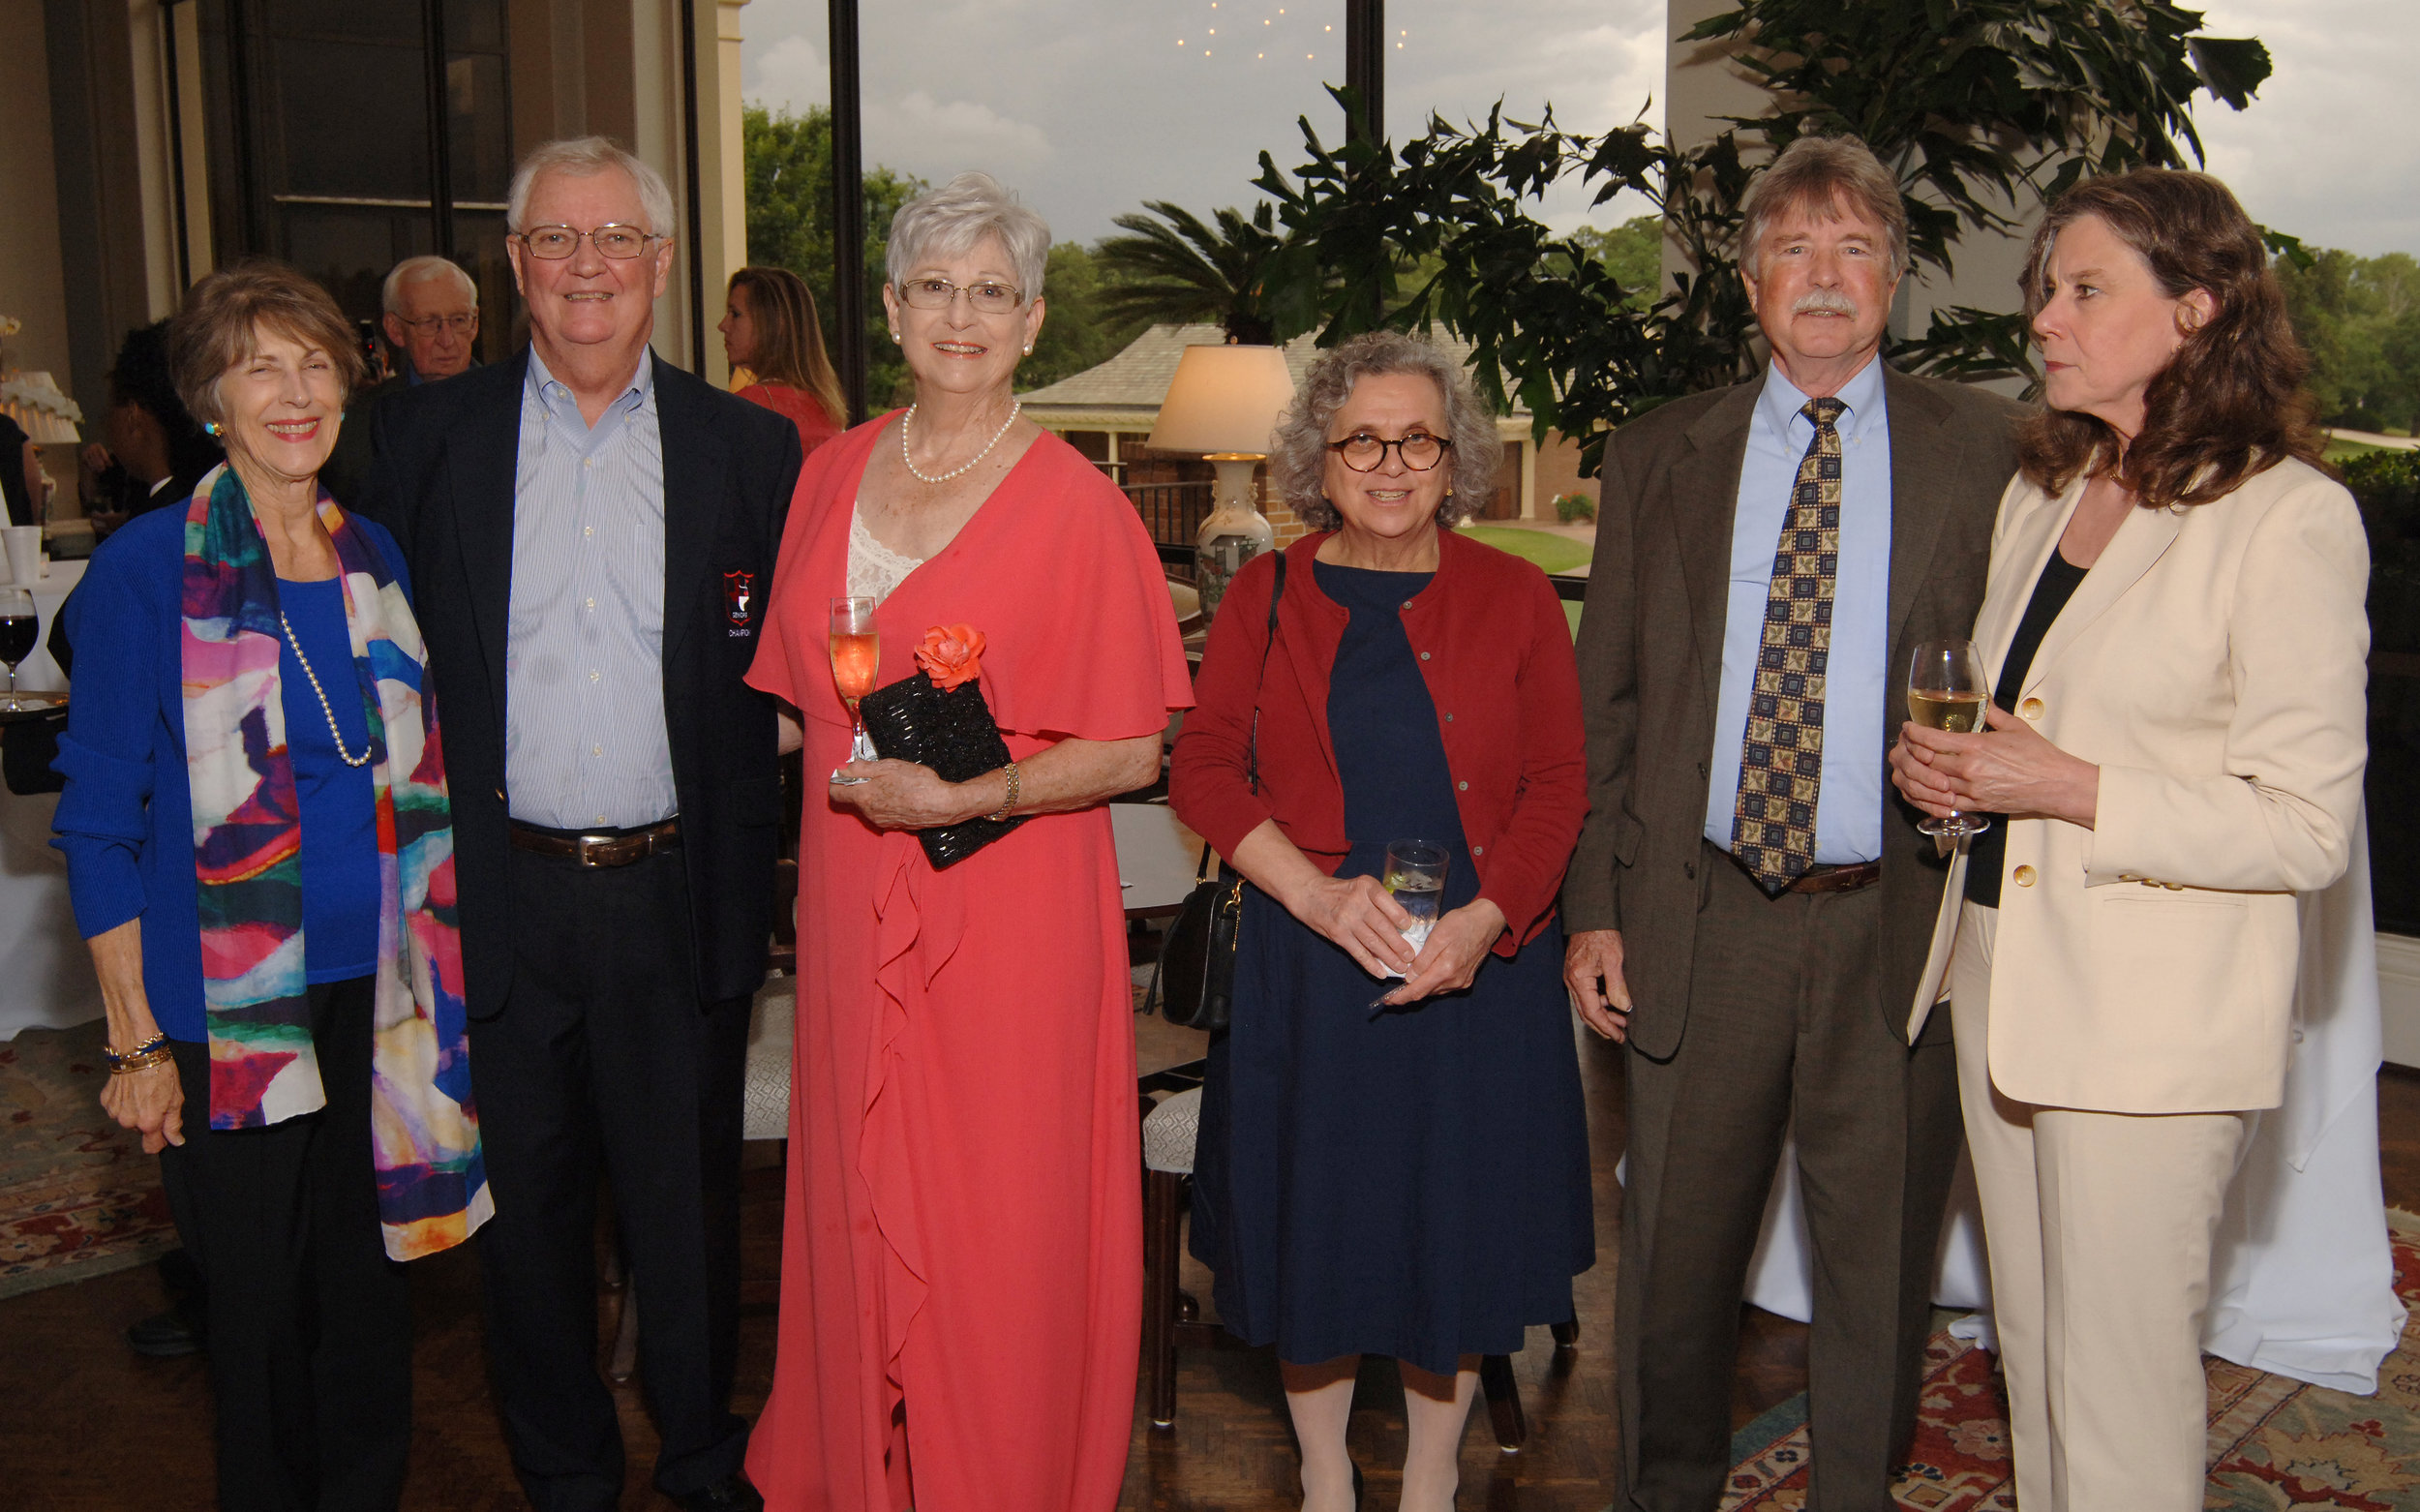 KPCGala_Beverly Pennington, Jim and Alice Sirois, Mary Anne Piacentini, Michael Huffmaster, Robbie Sharp_Tom DuBrock photo.JPG